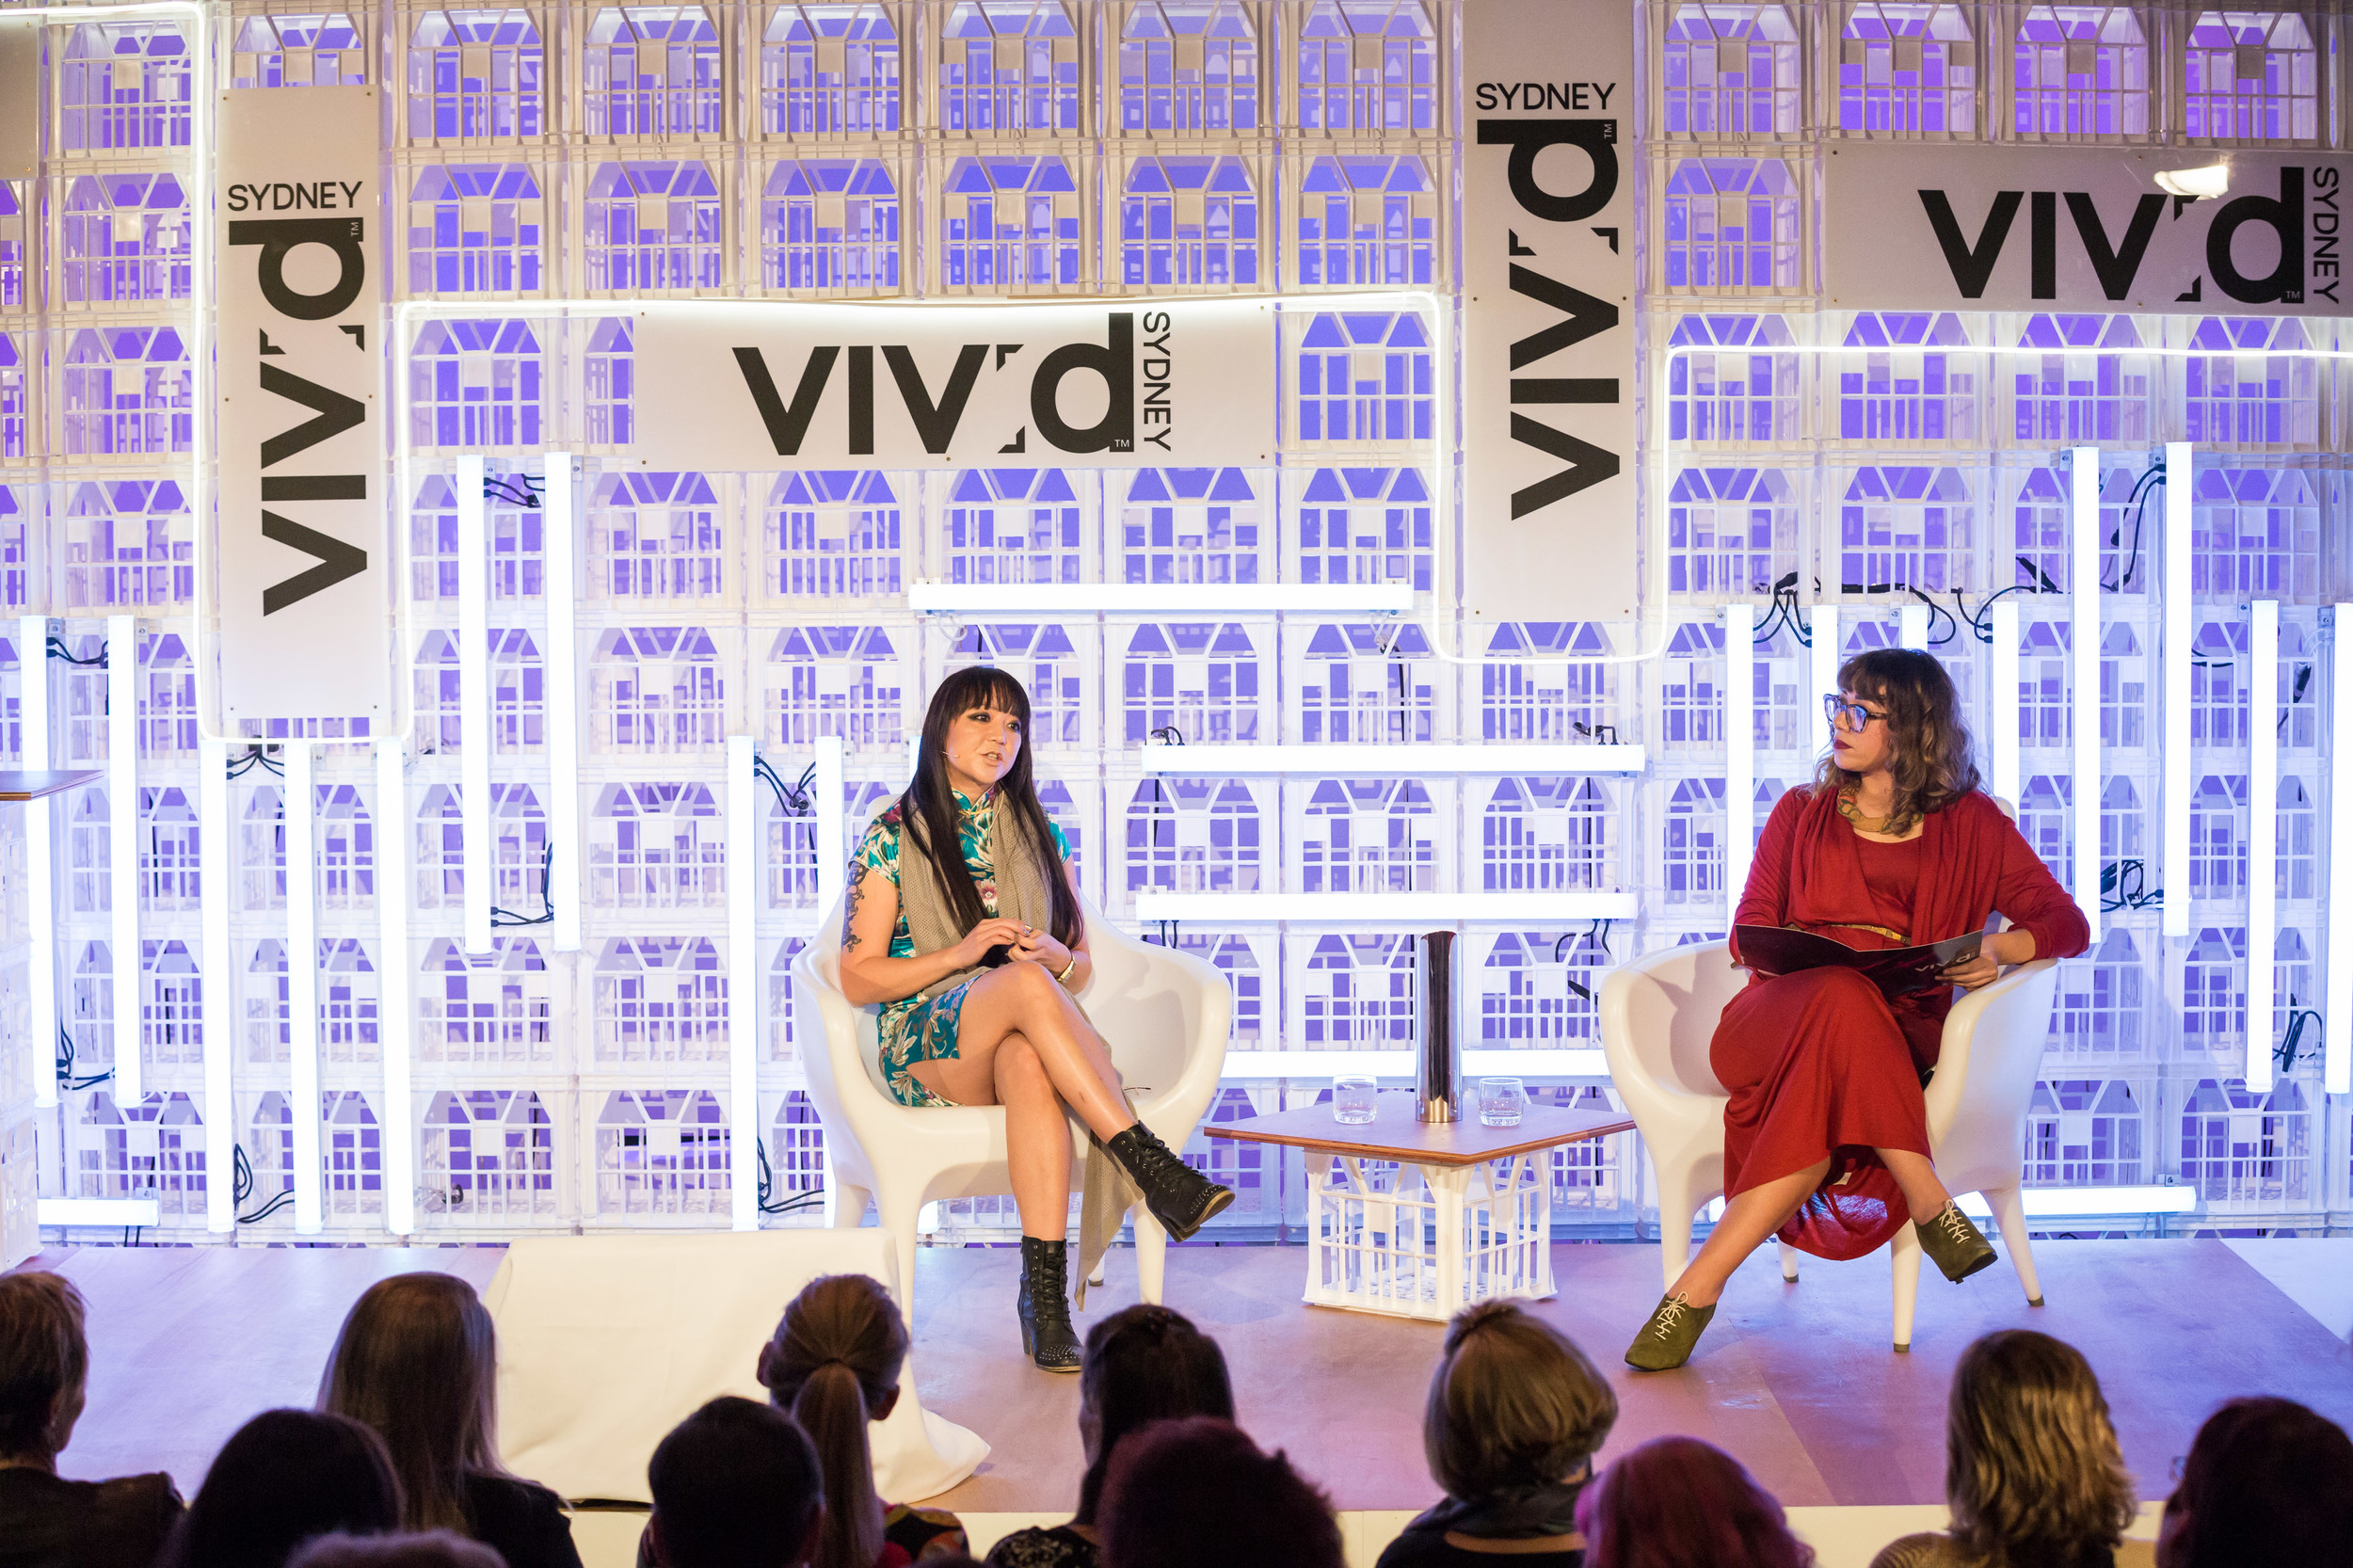 Candy Chang and Jess Scully at Vivid Ideas 2014. Photography by Daniel Boud.